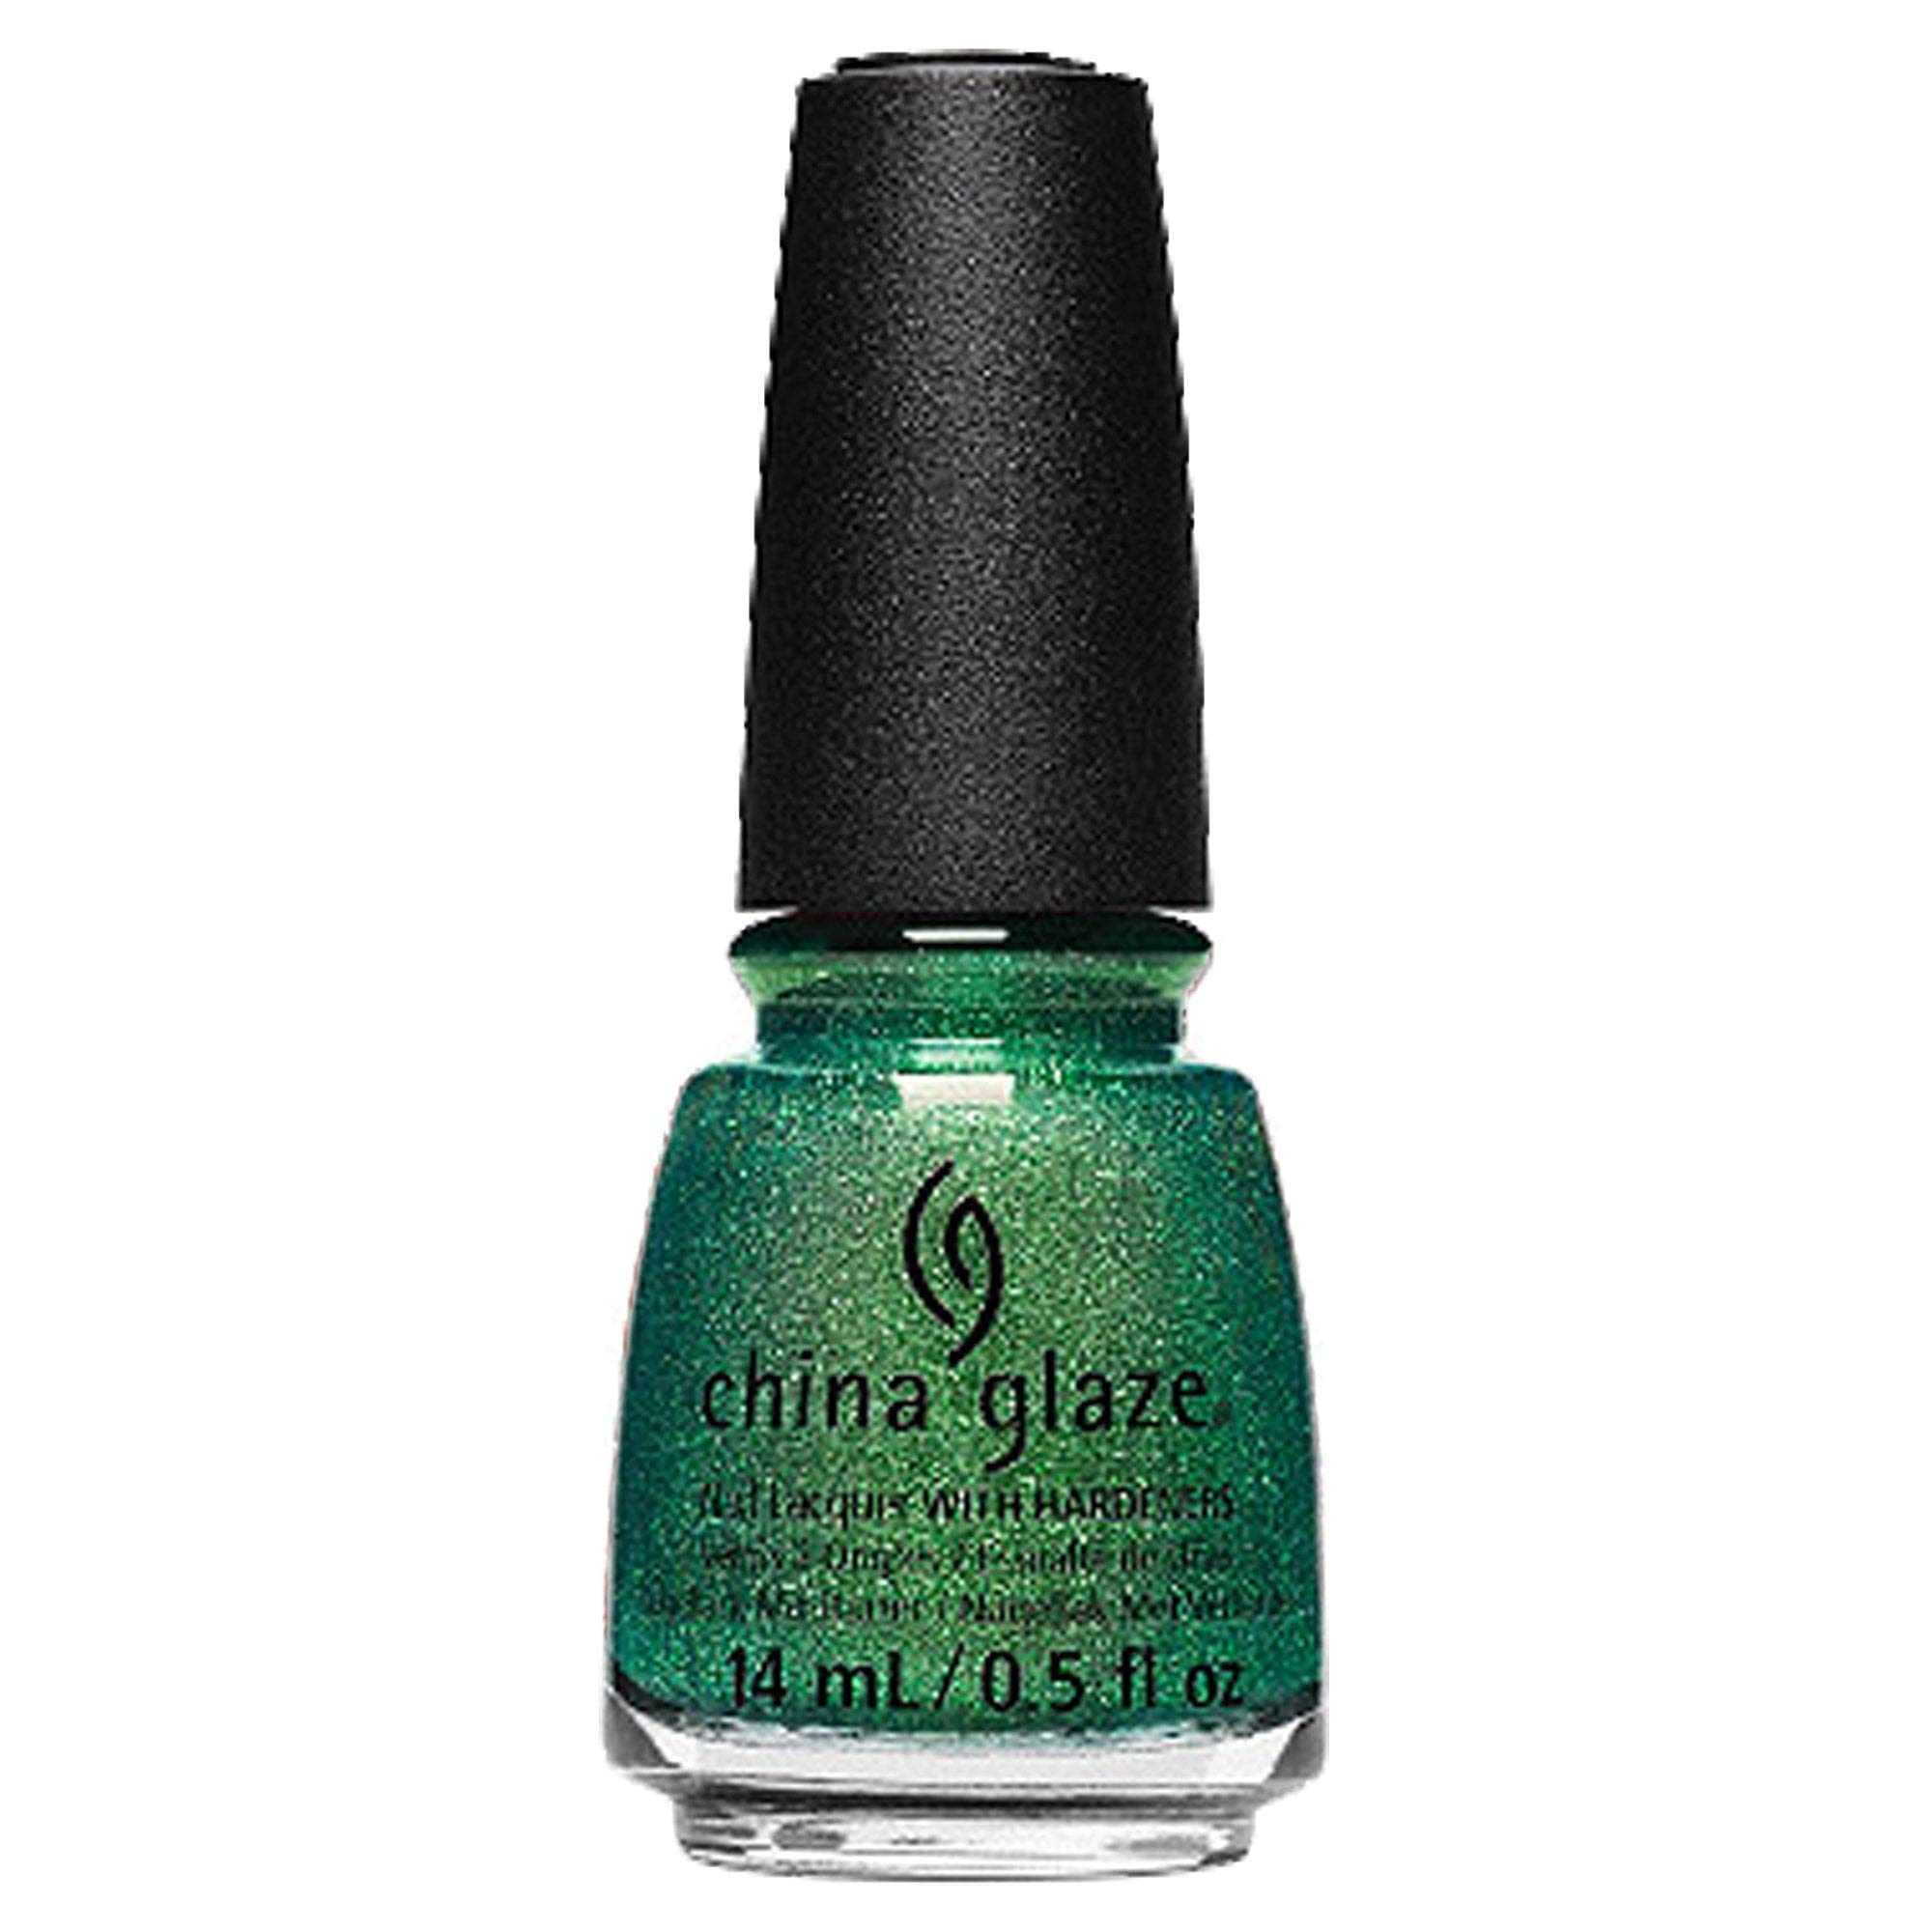 China Glaze - To Catch A Colour 2019 Nail Polish Collection - Green With Jealousy (84728) 14ml